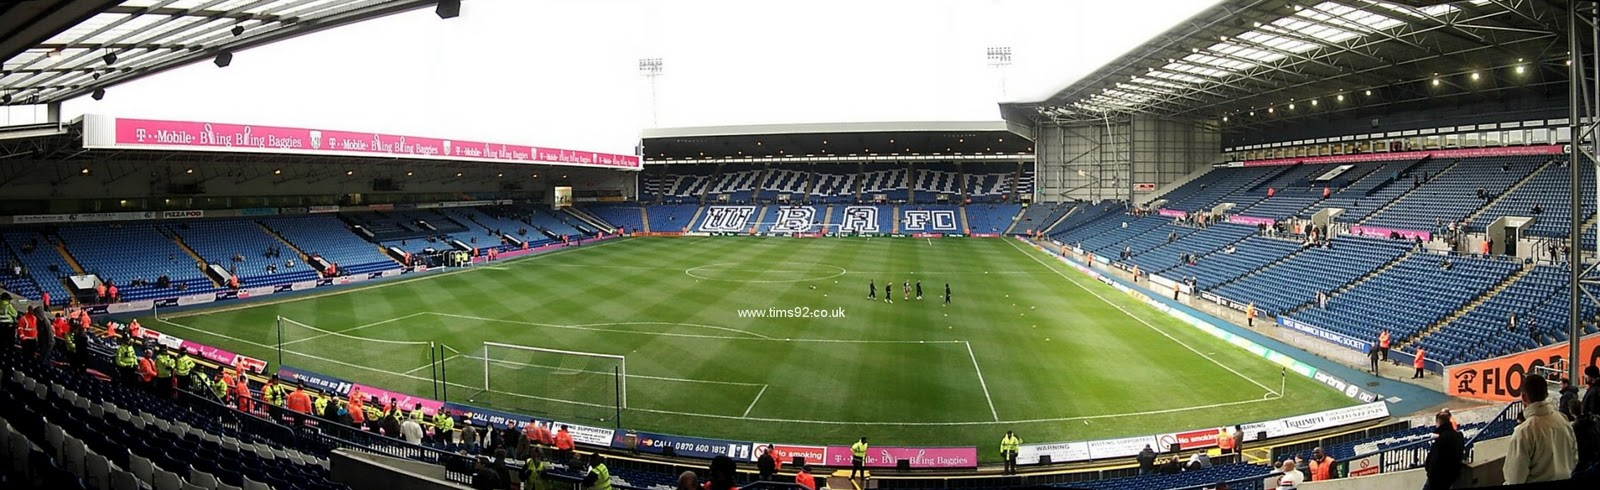 The dream was to play at The Hawthorns